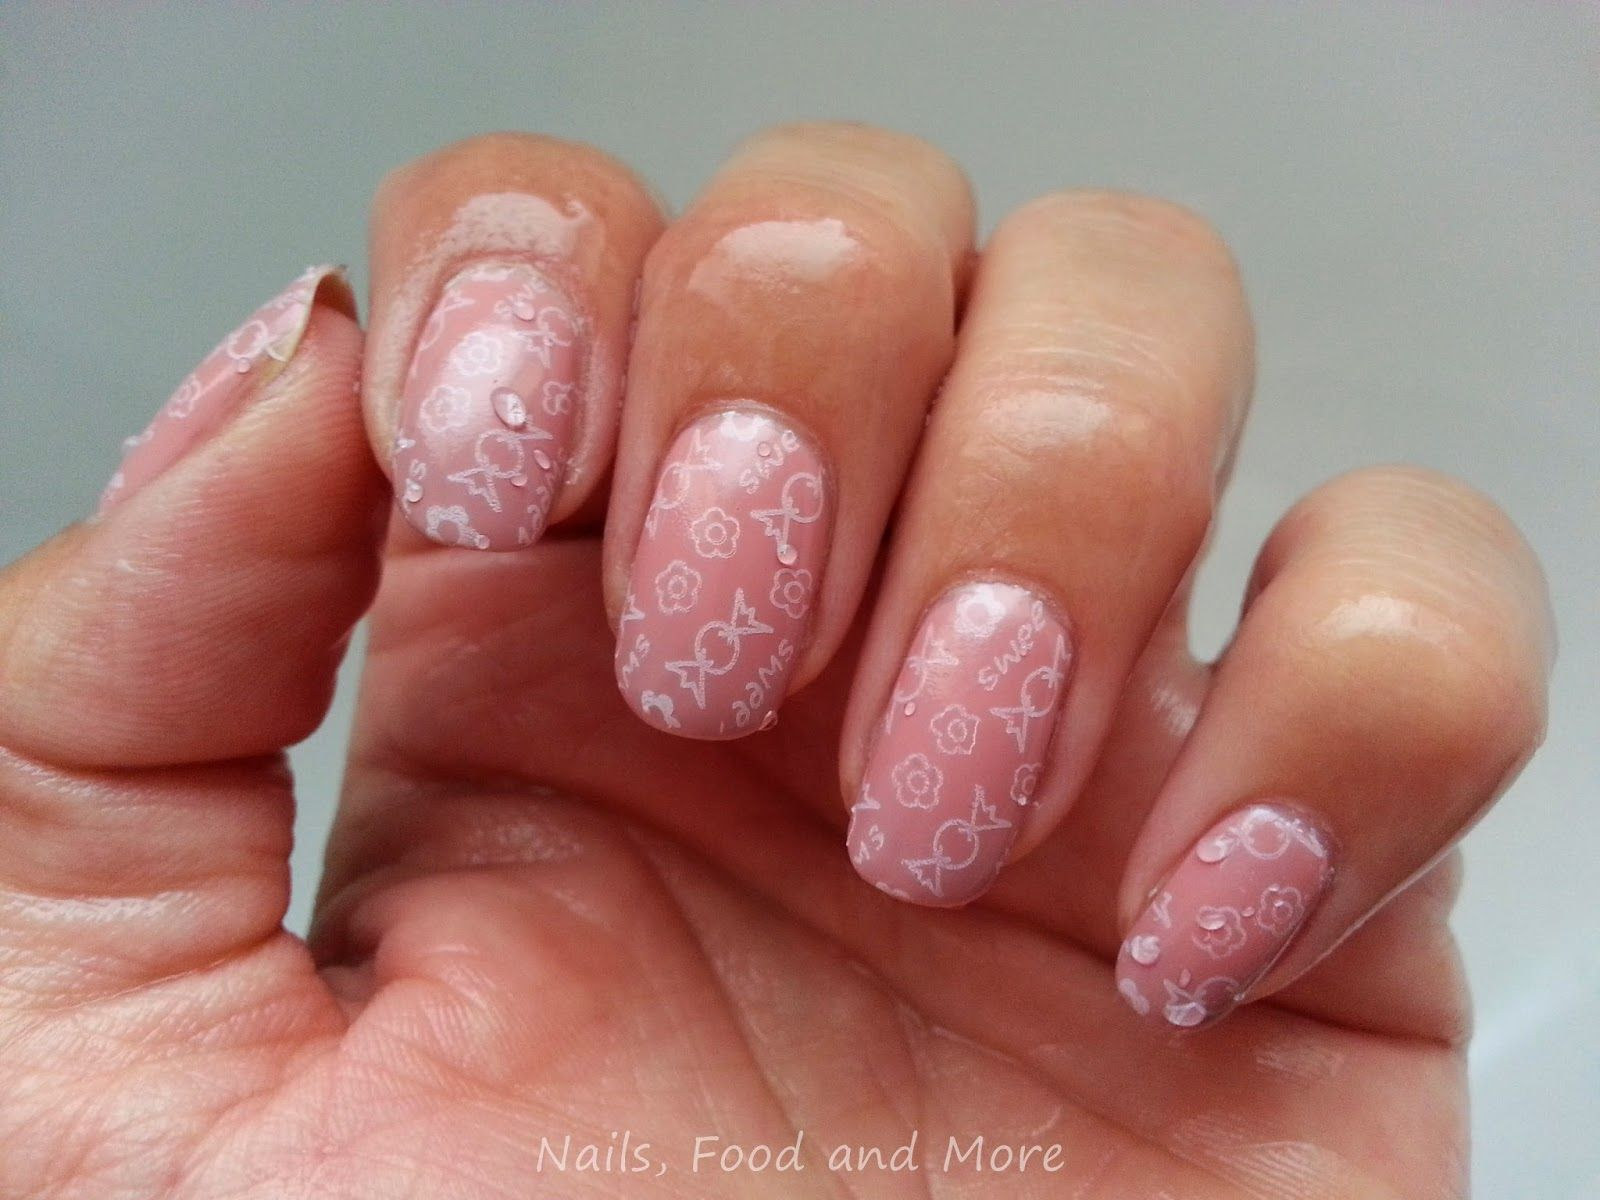 Nails, Food and More: [Review] Esence Road Trip TE